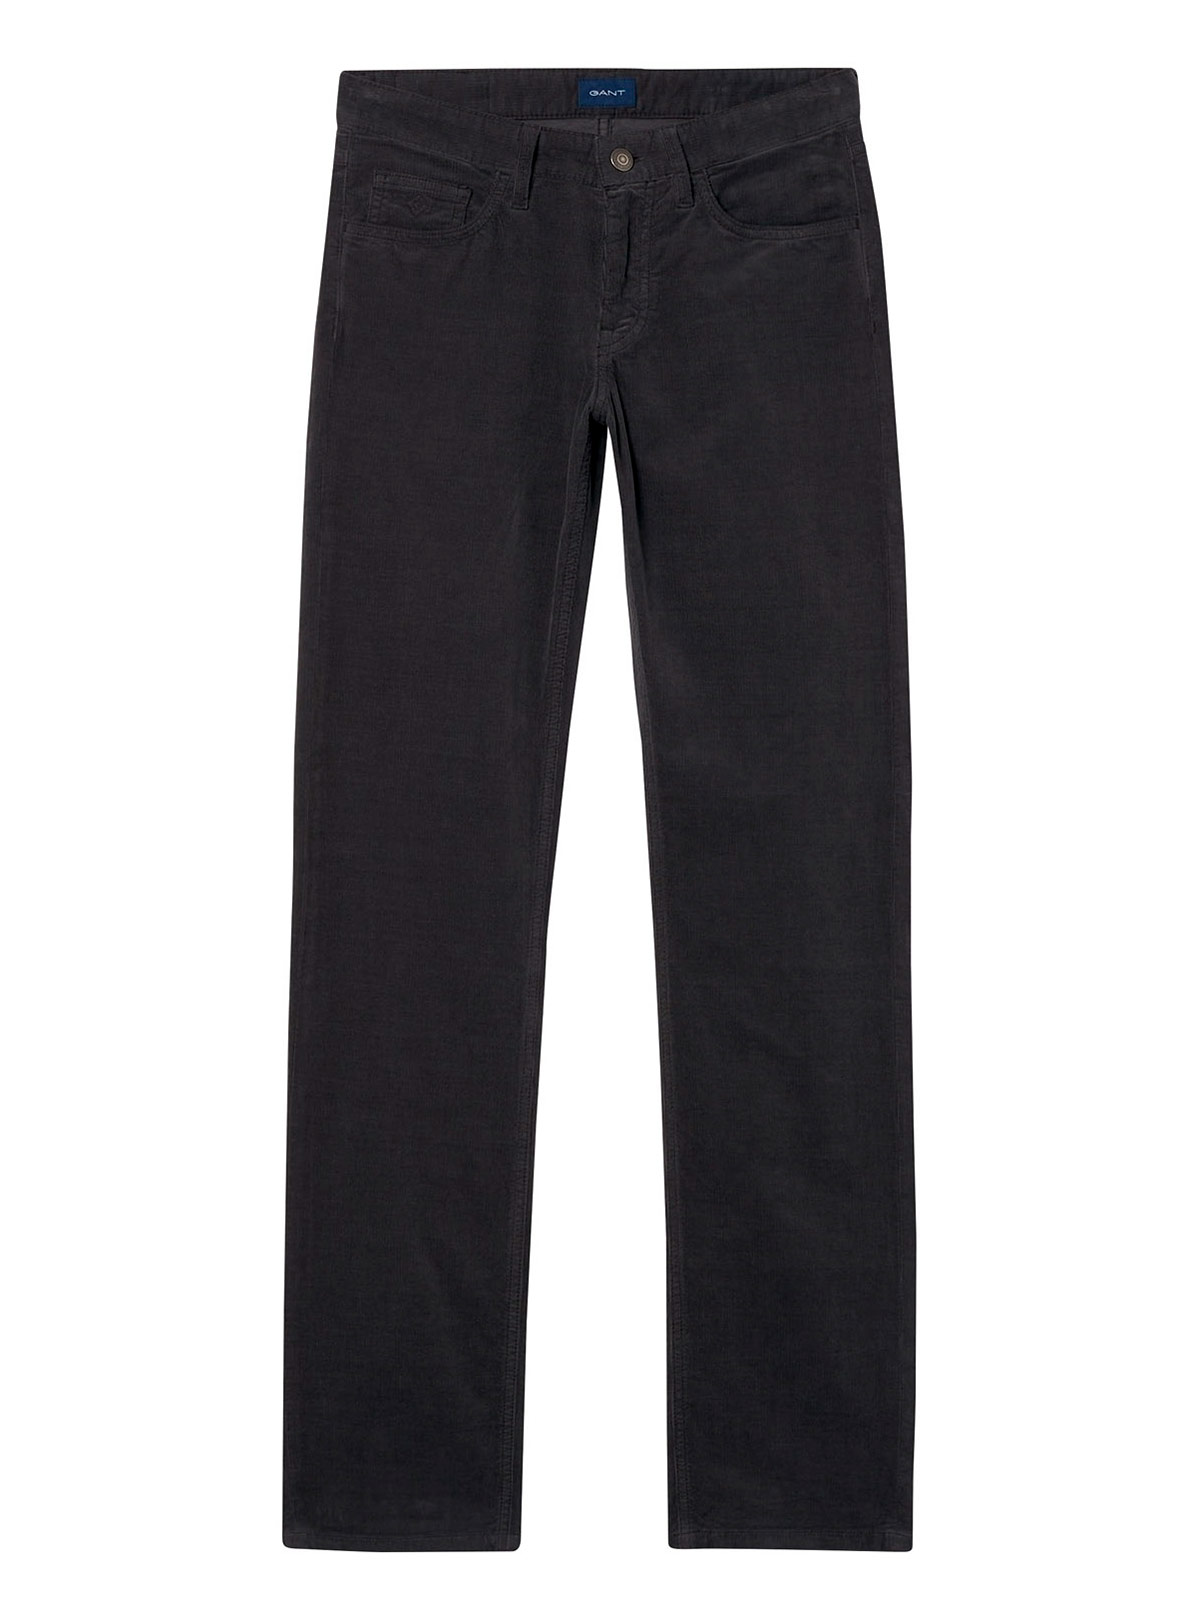 Picture of GANT | Women's Straight Cord Jeans